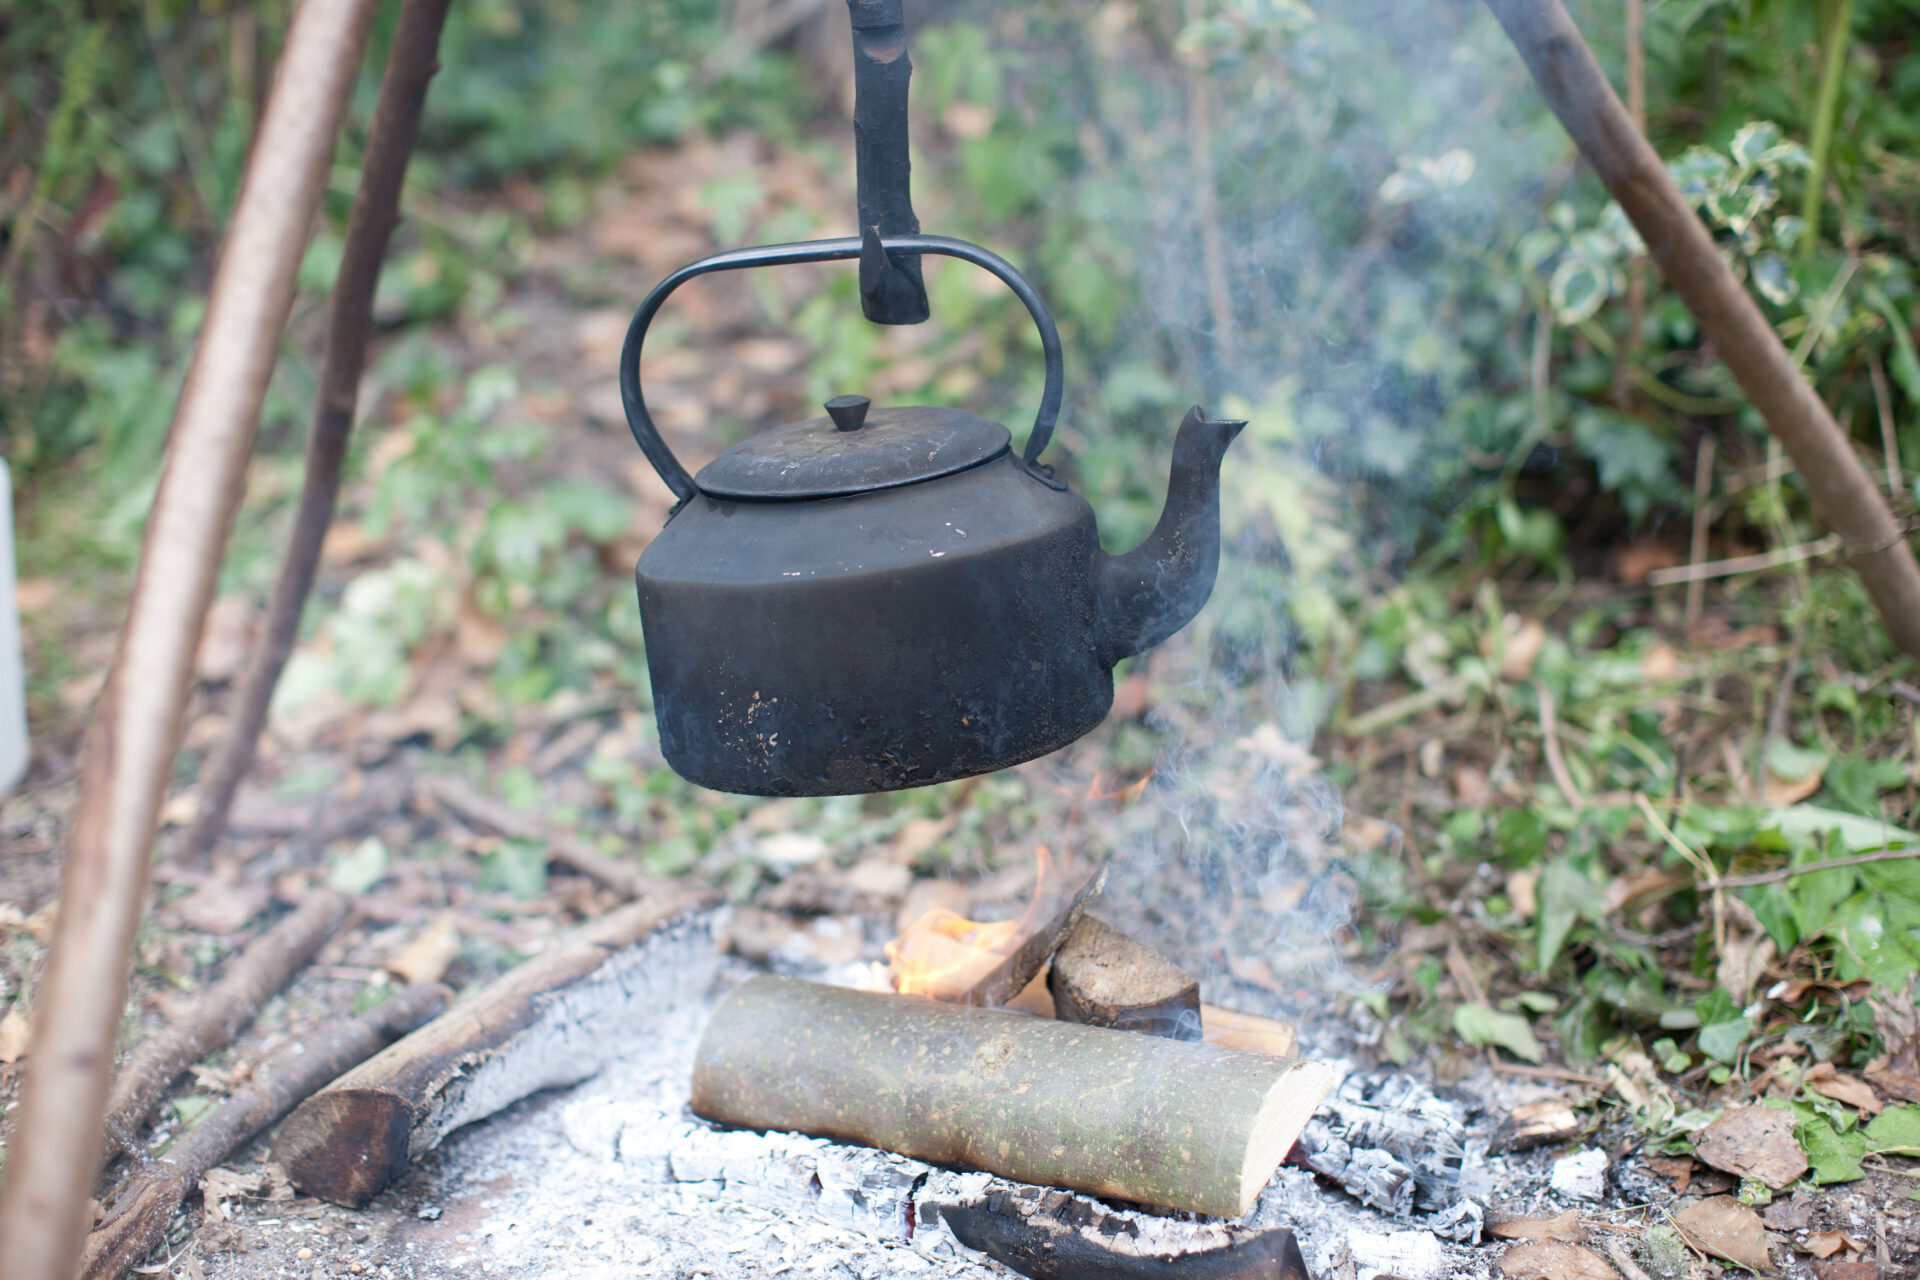 – Shaw & Shaw Photography – Shaw and Shaw Photographers Manchester – advertising photographers – graphic image – Kirkstall Forge – kettle boiling over camp fire outside